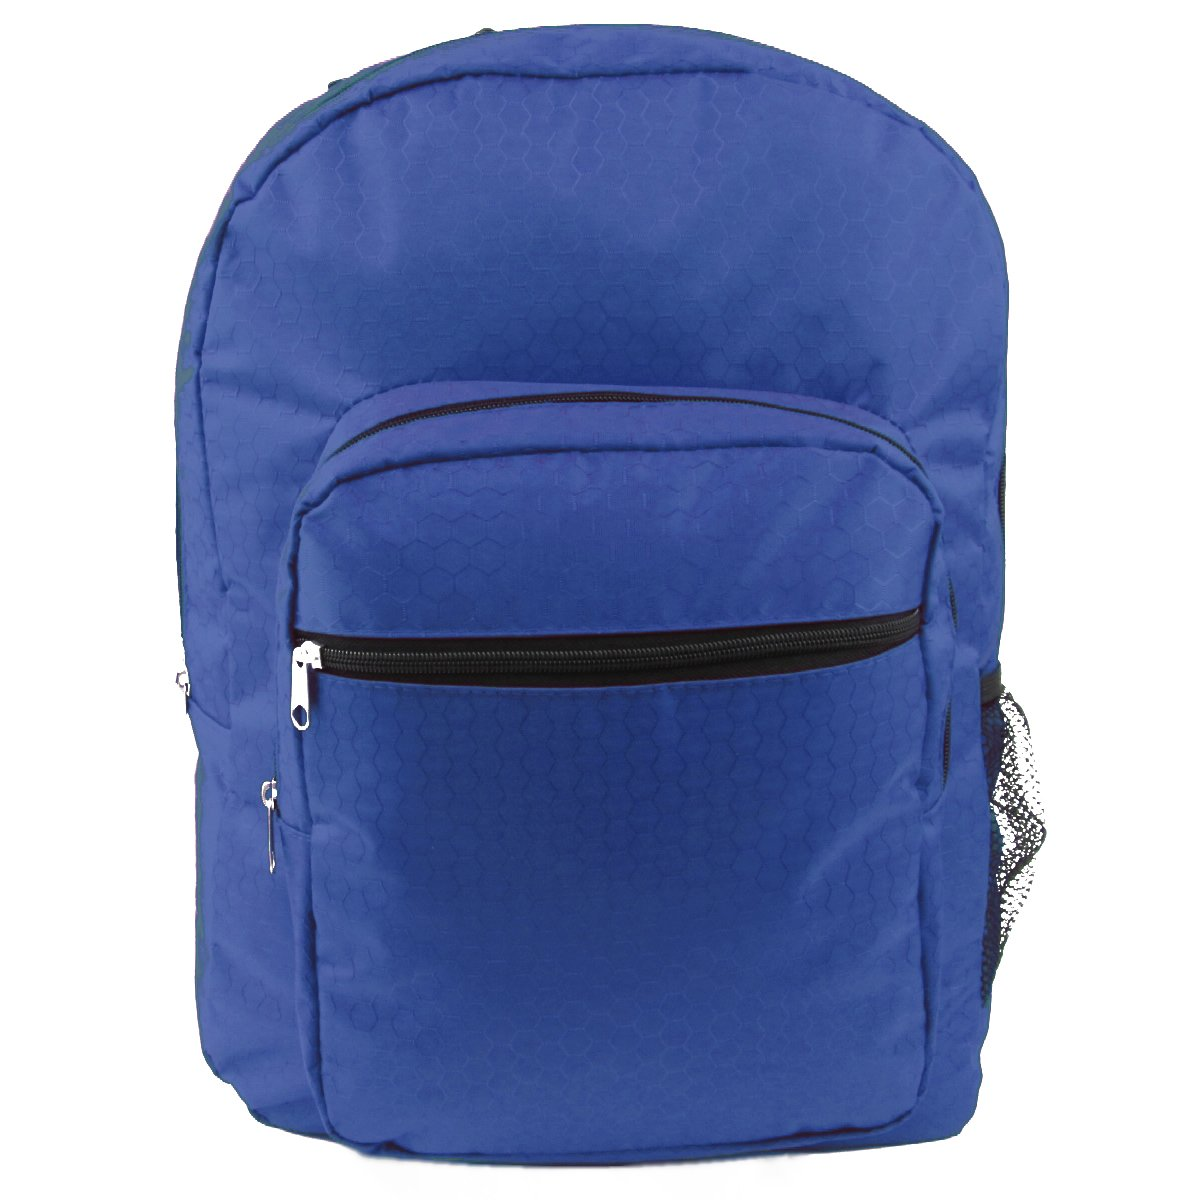 17'' Wholesale Backpack - Case of 24